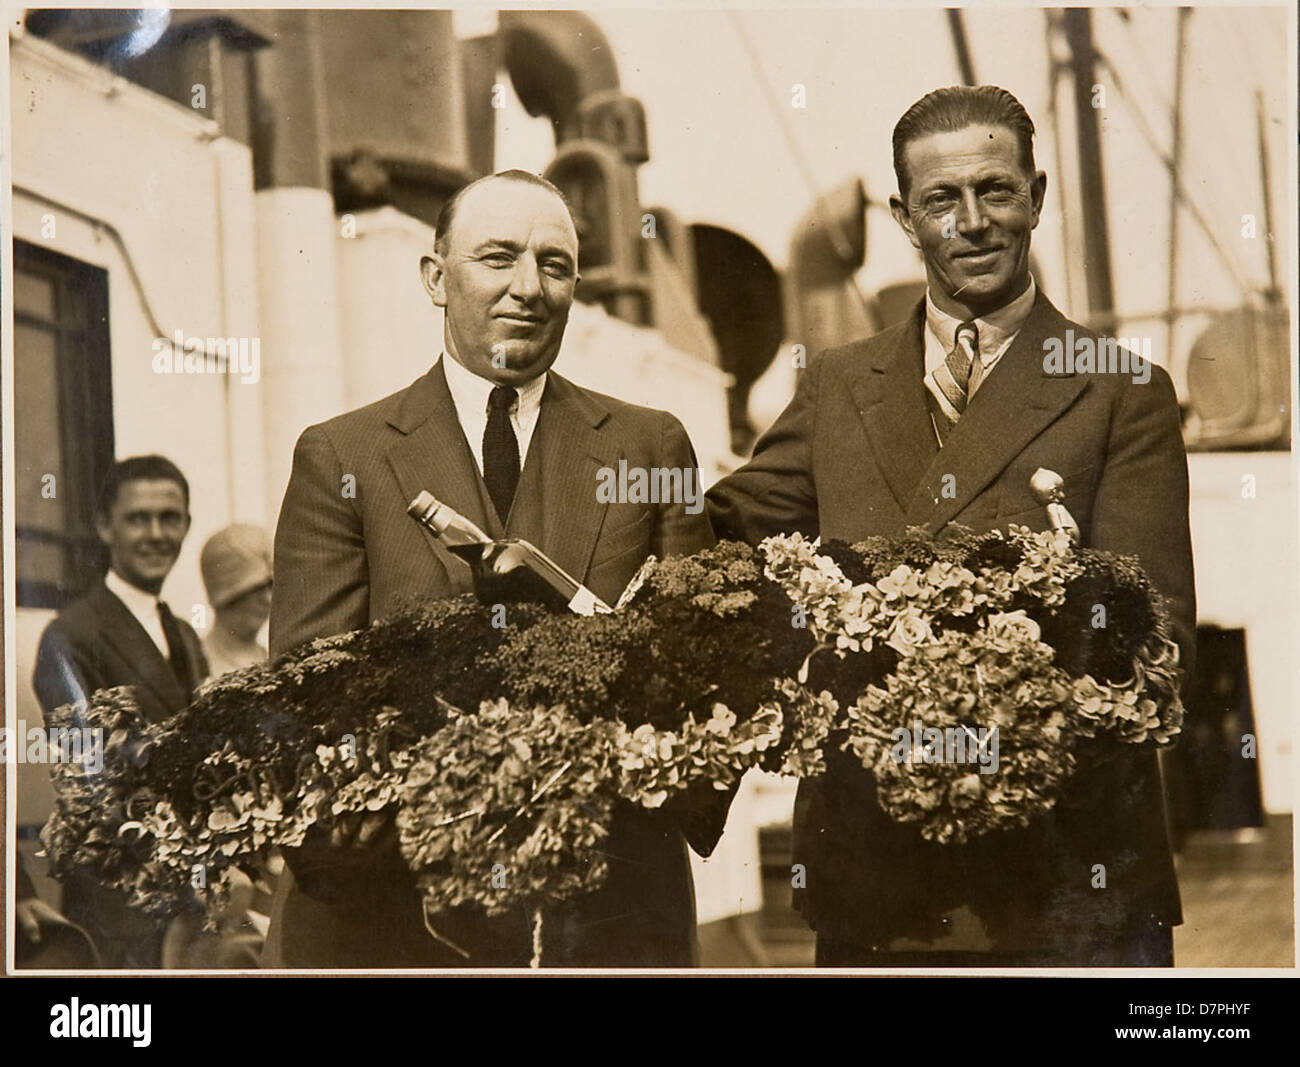 Norman 'Wizard' Smith and Don Harkness on board S.S. Maunganui, 1926 - 1936 - Stock Image